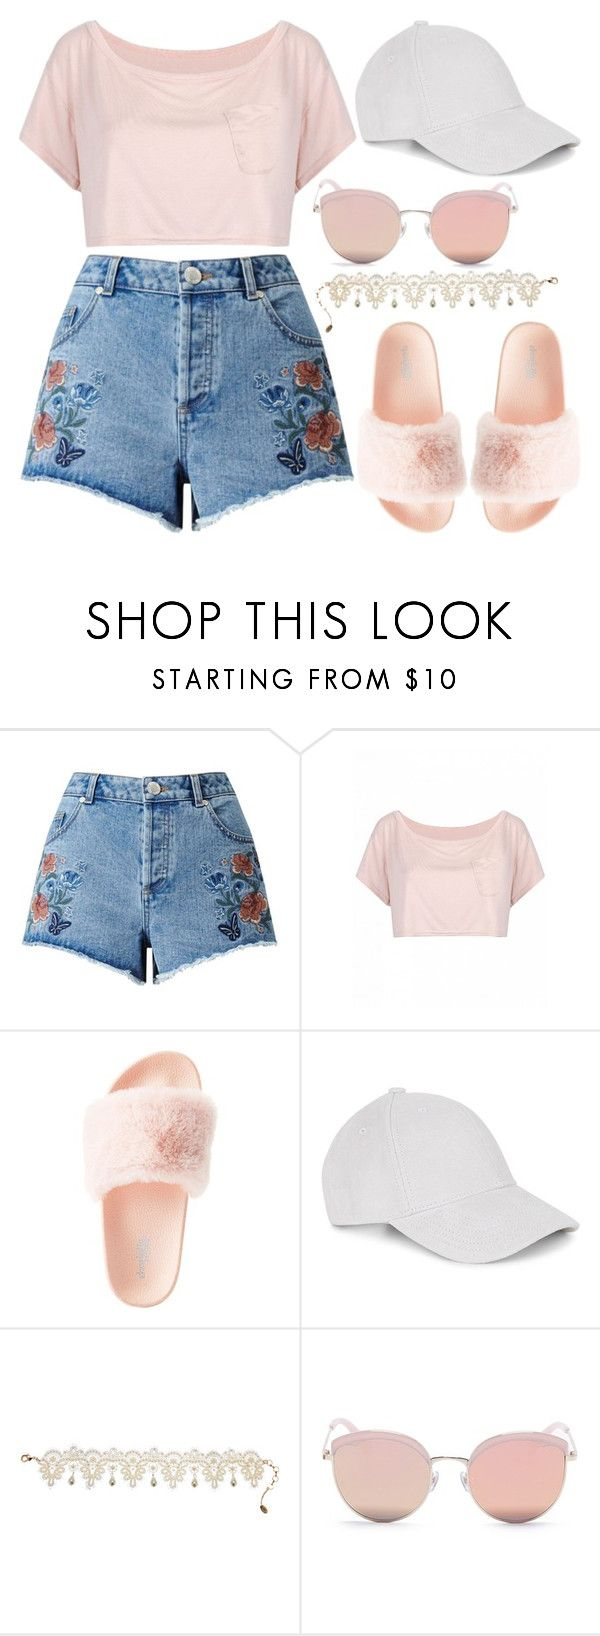 """1355."" by asoul4 on Polyvore featuring Miss Selfridge, Charlotte Russe, Le Amonie, Amrita Singh and Stephane + Christian"